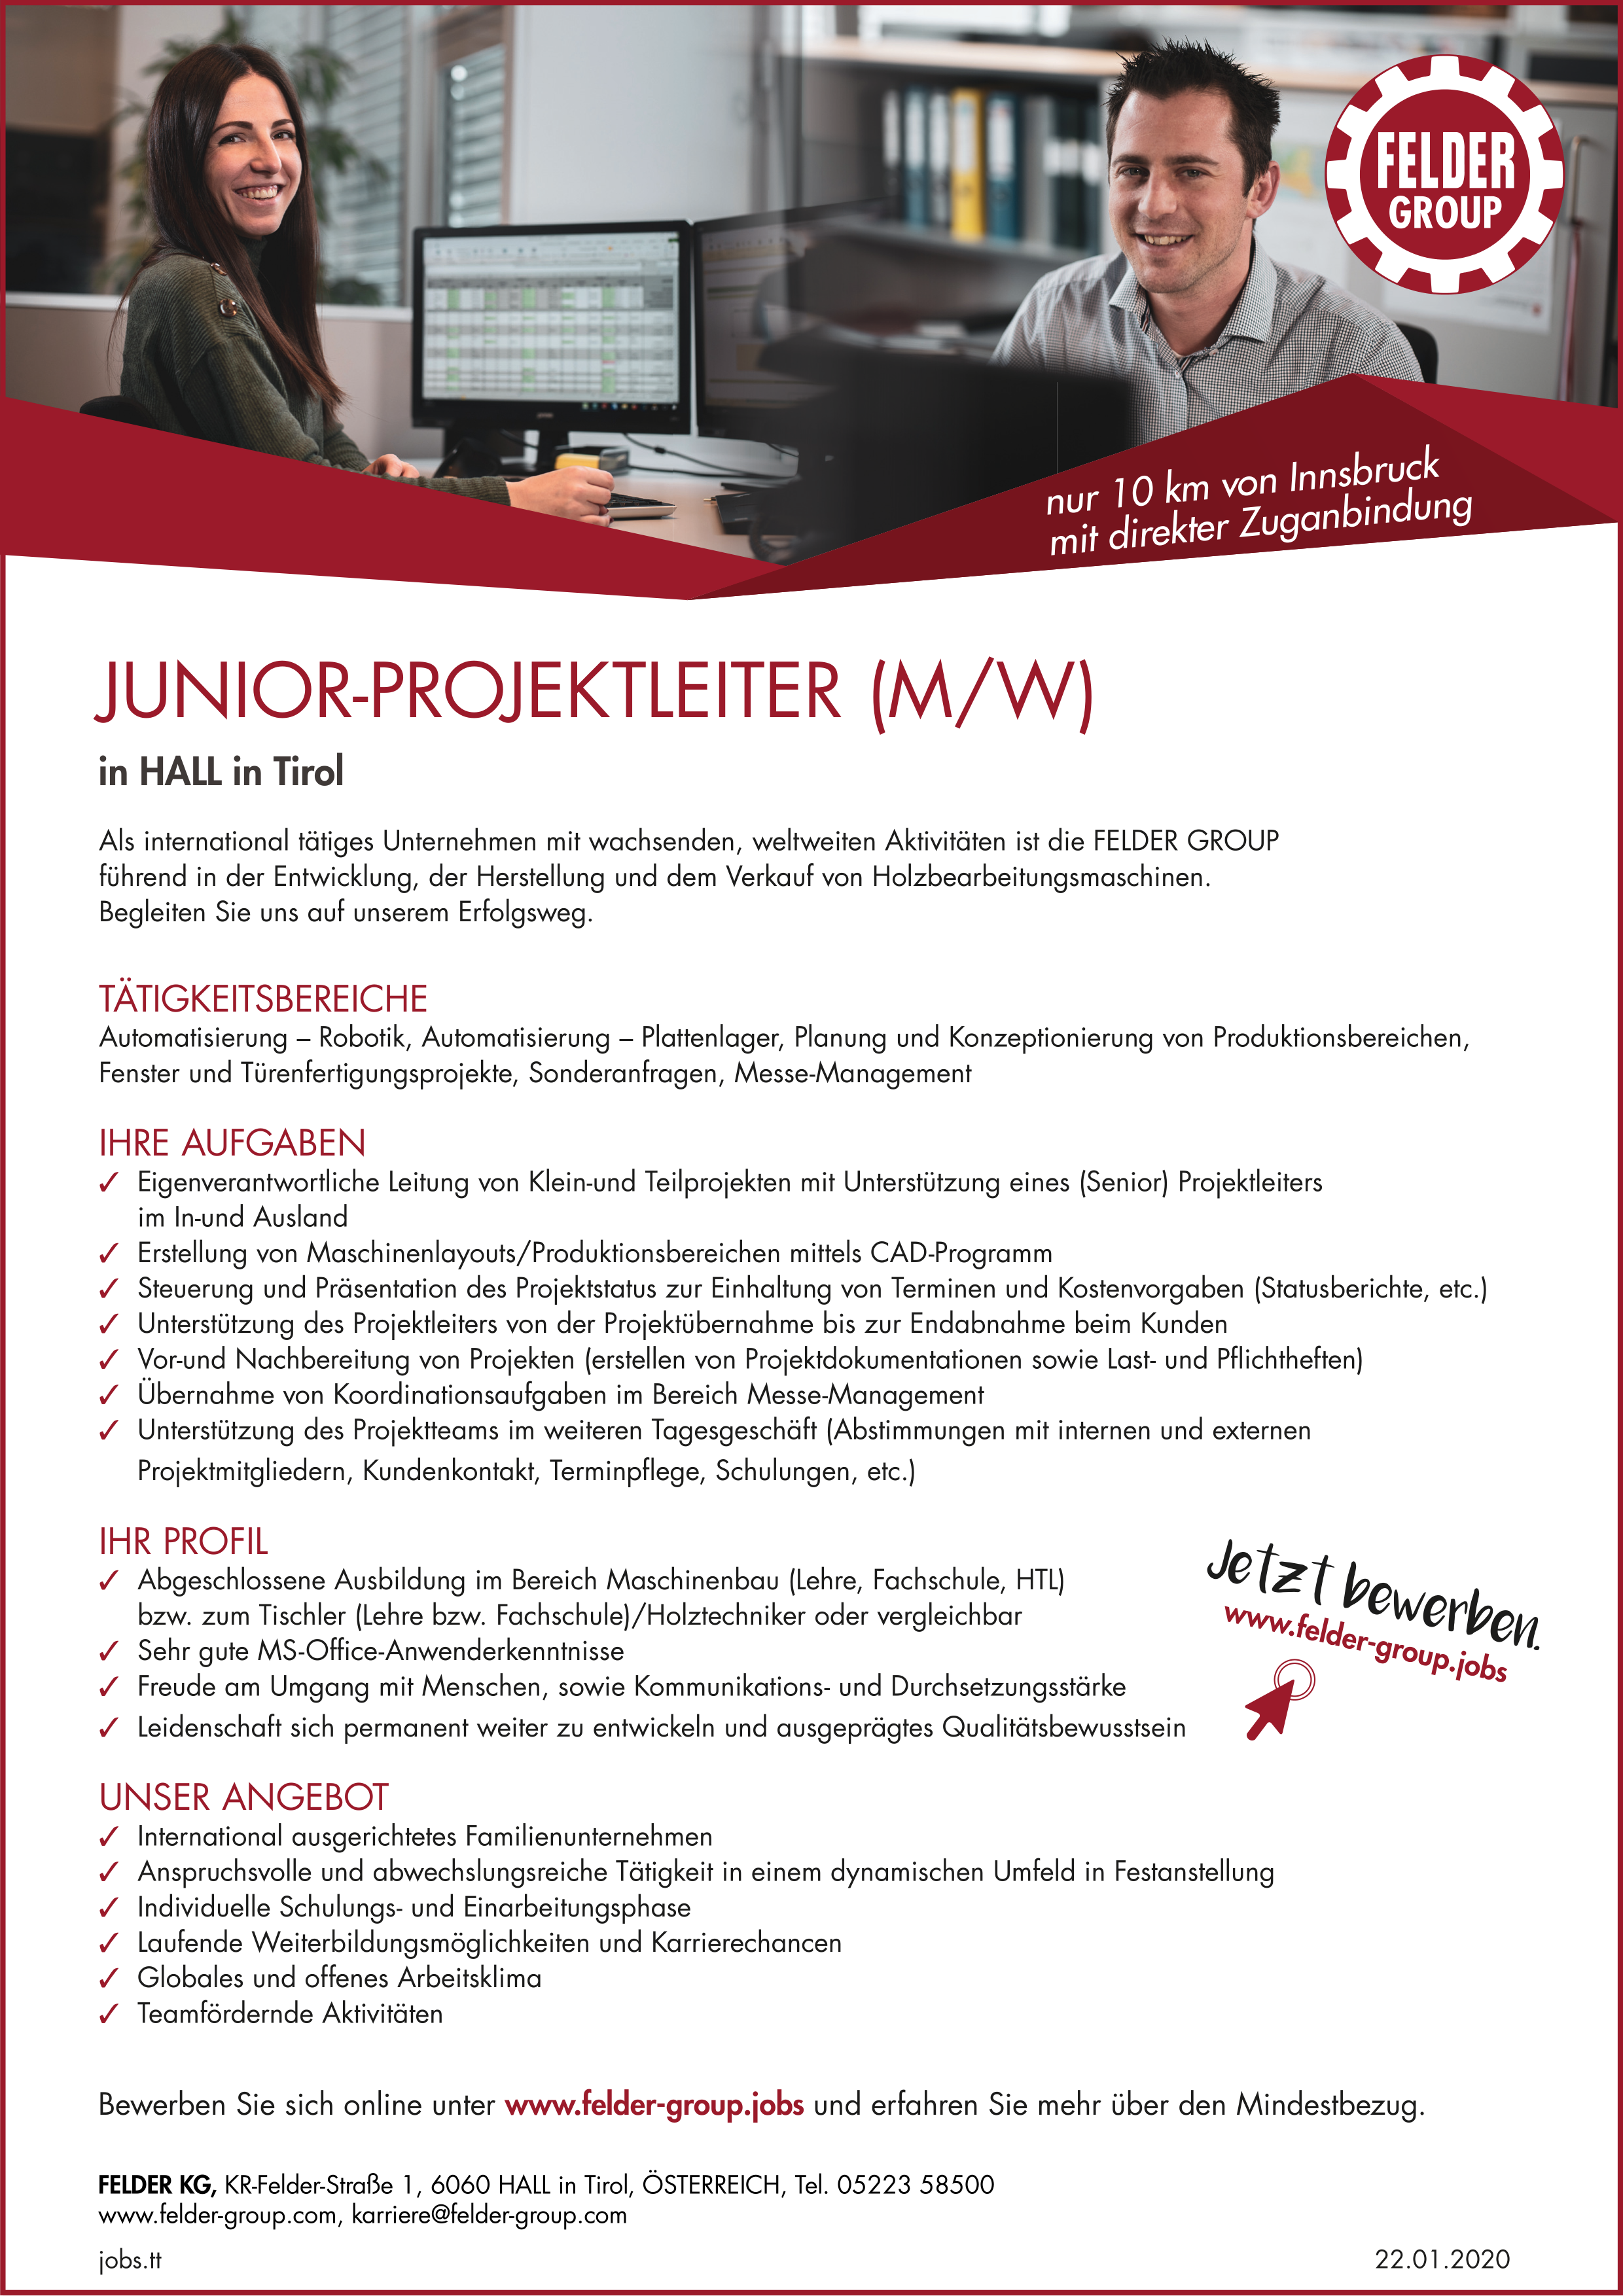 JUNIOR-PROJEKTLEITER (M/W)